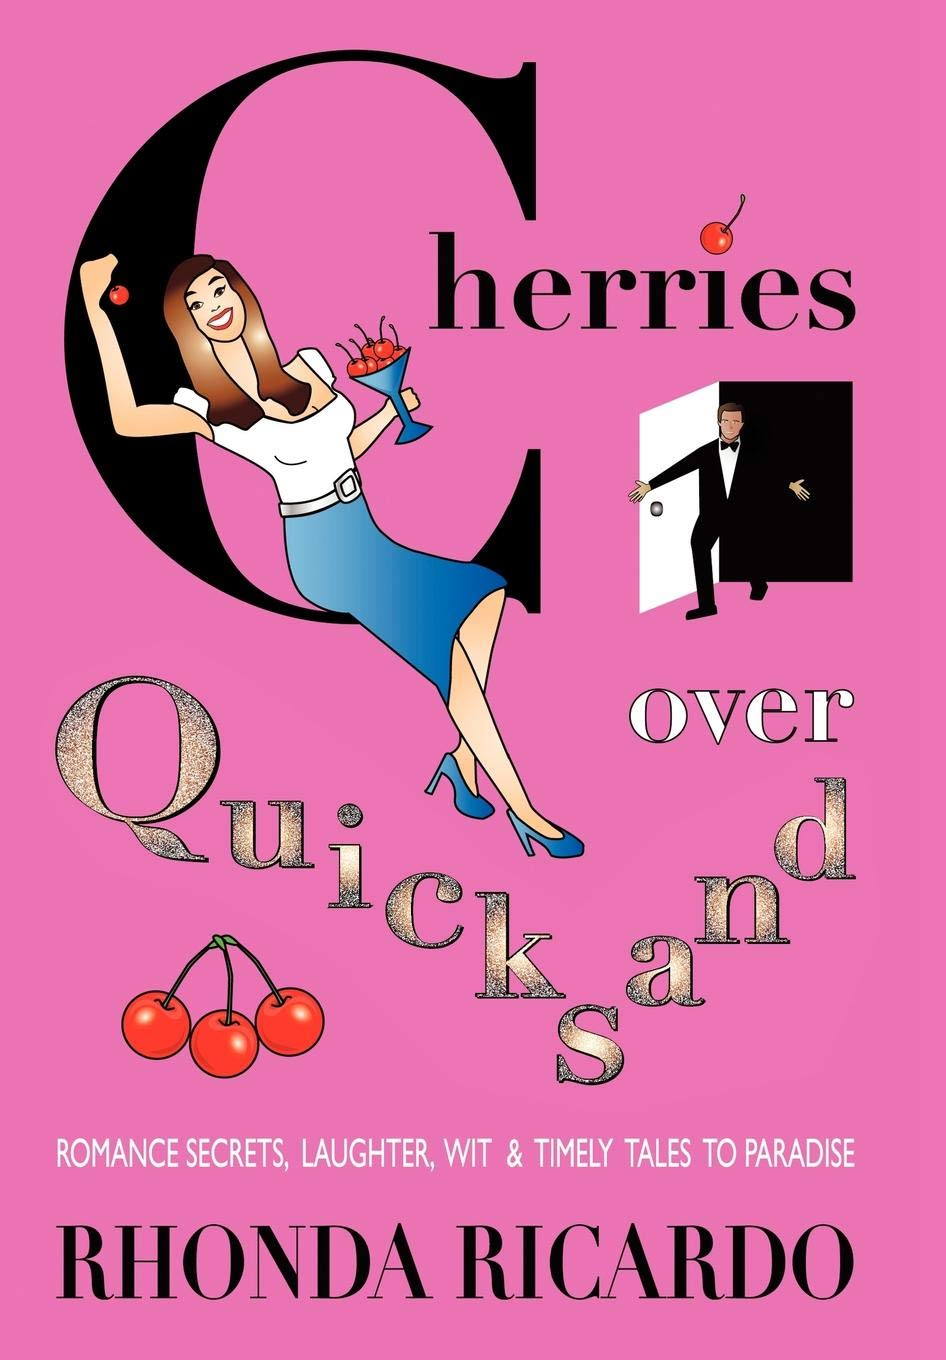 Read Cherries Over Quicksand Fun Stories From Men Who Returned To Their Resilient Women And More By Rhonda Ricardo